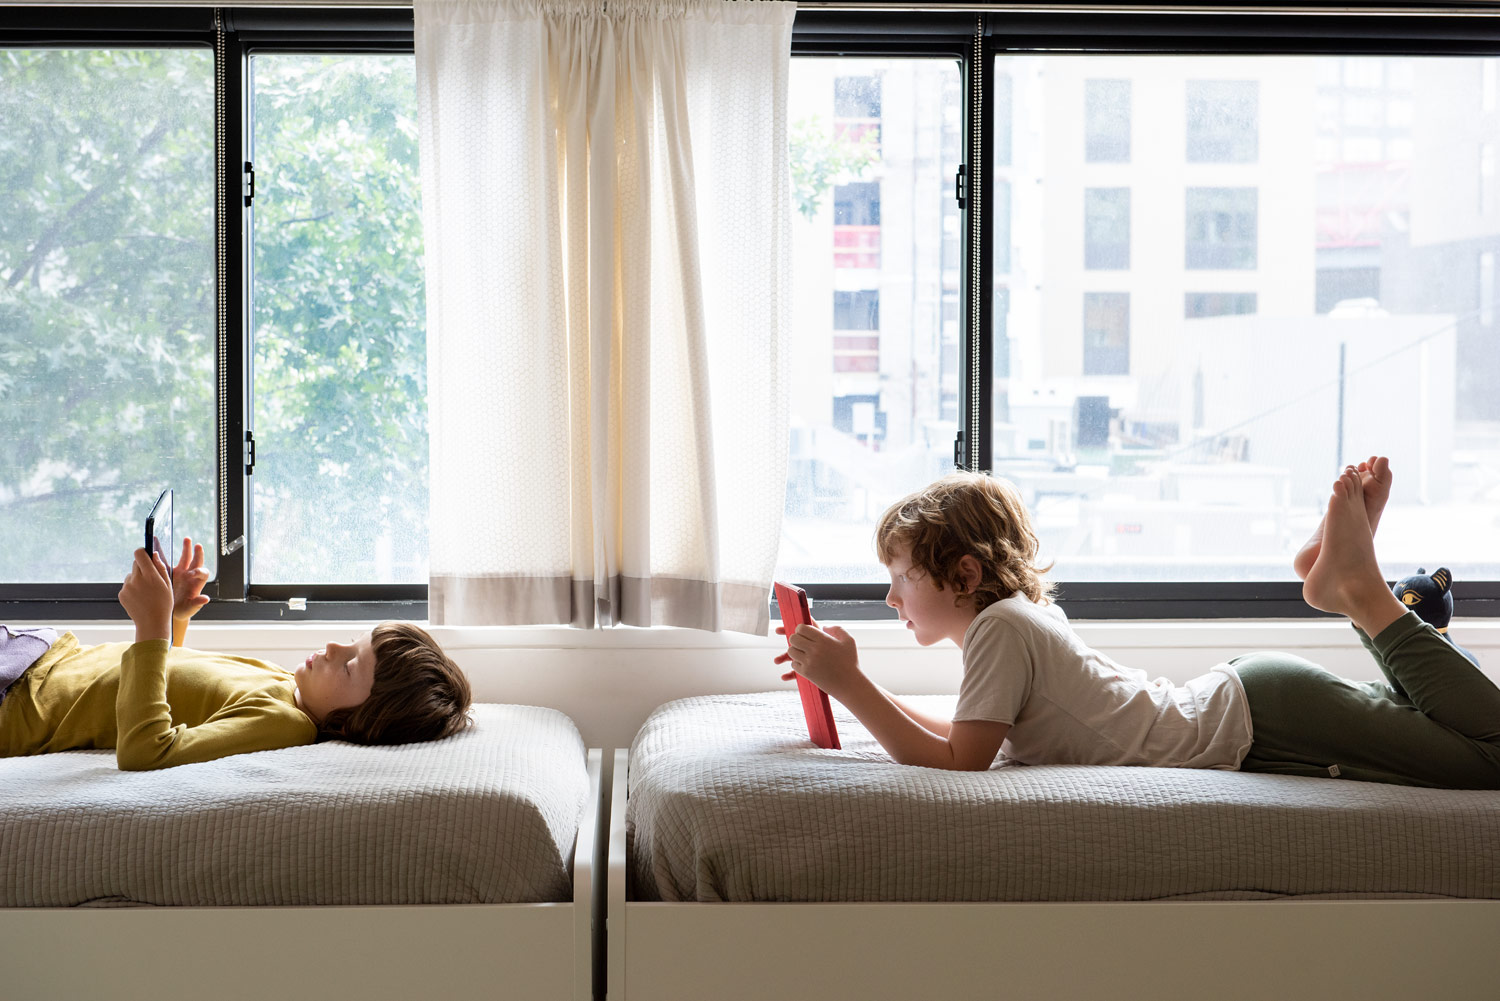 children with iPads on their beds